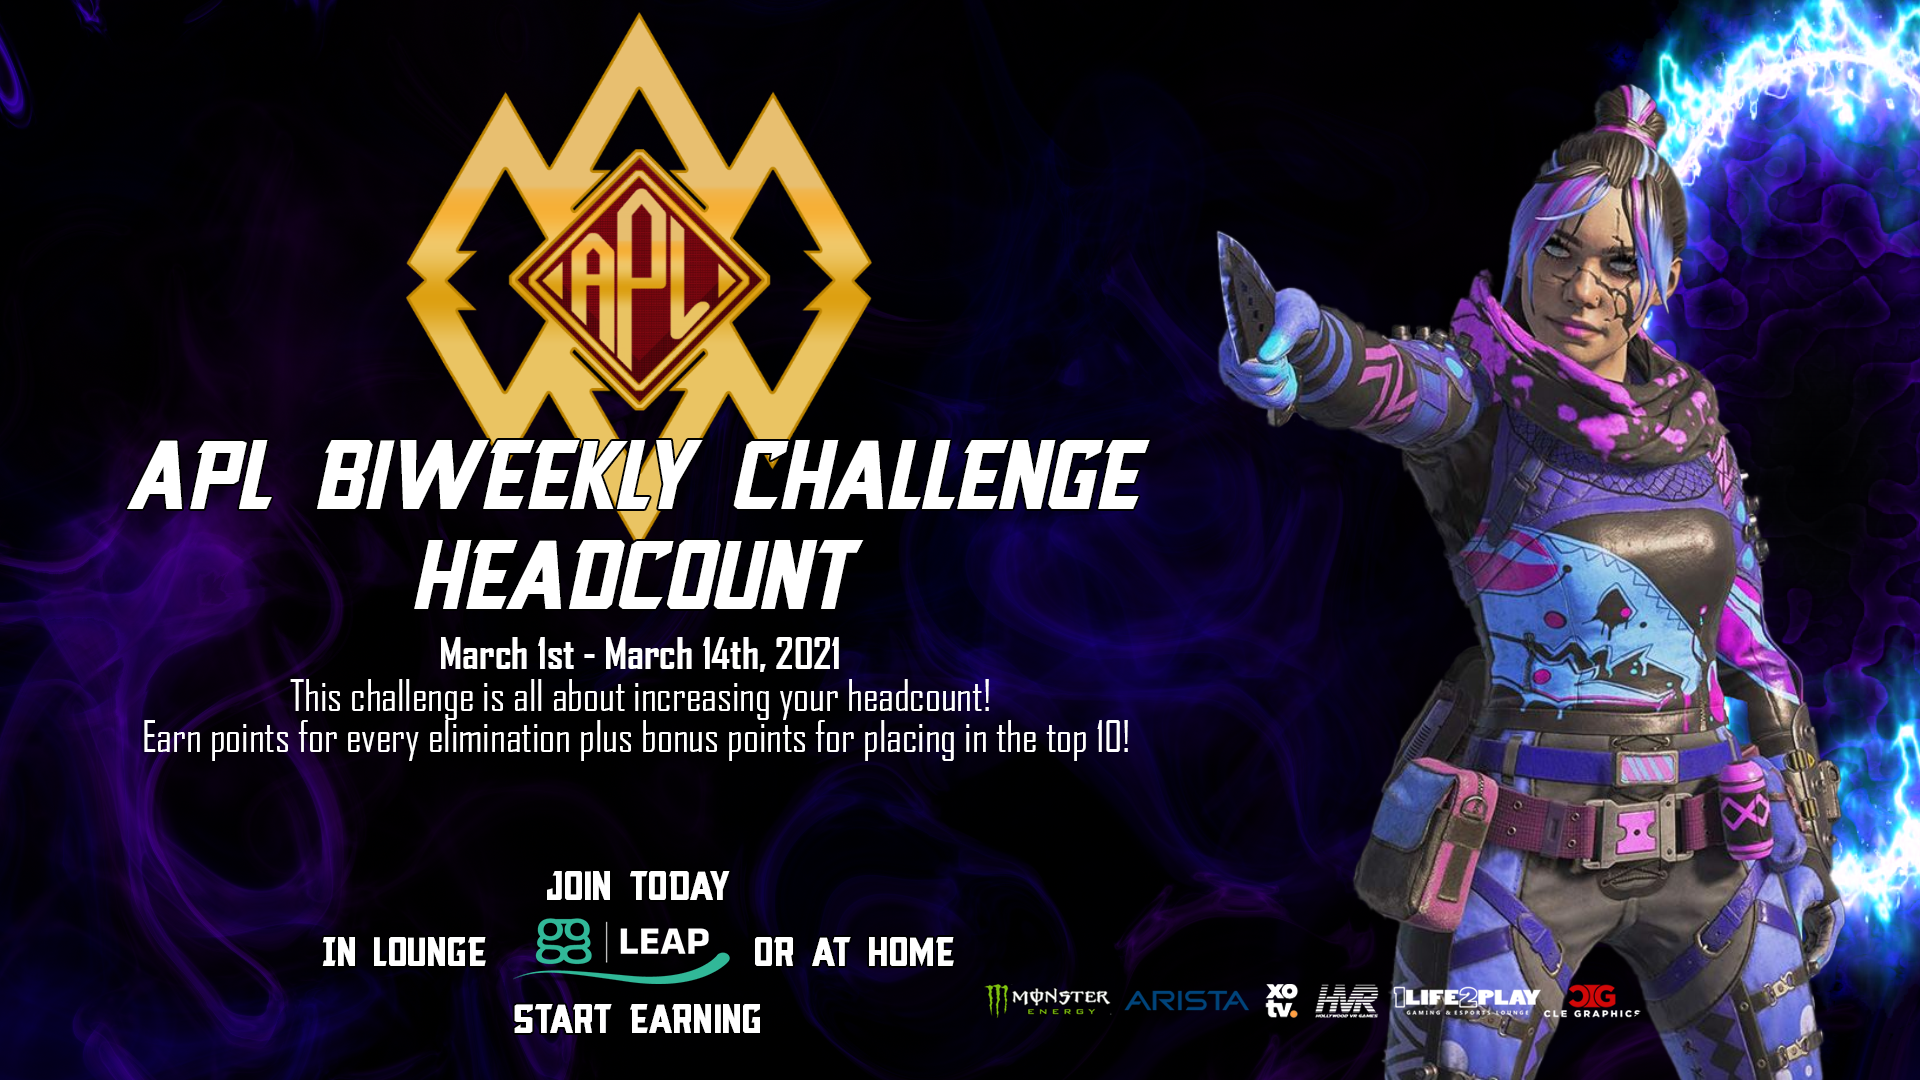 - APL Biweekly Challenge Headcount 3 - Apex Predator League presented by 1Life2Play fueled by Monster Energy